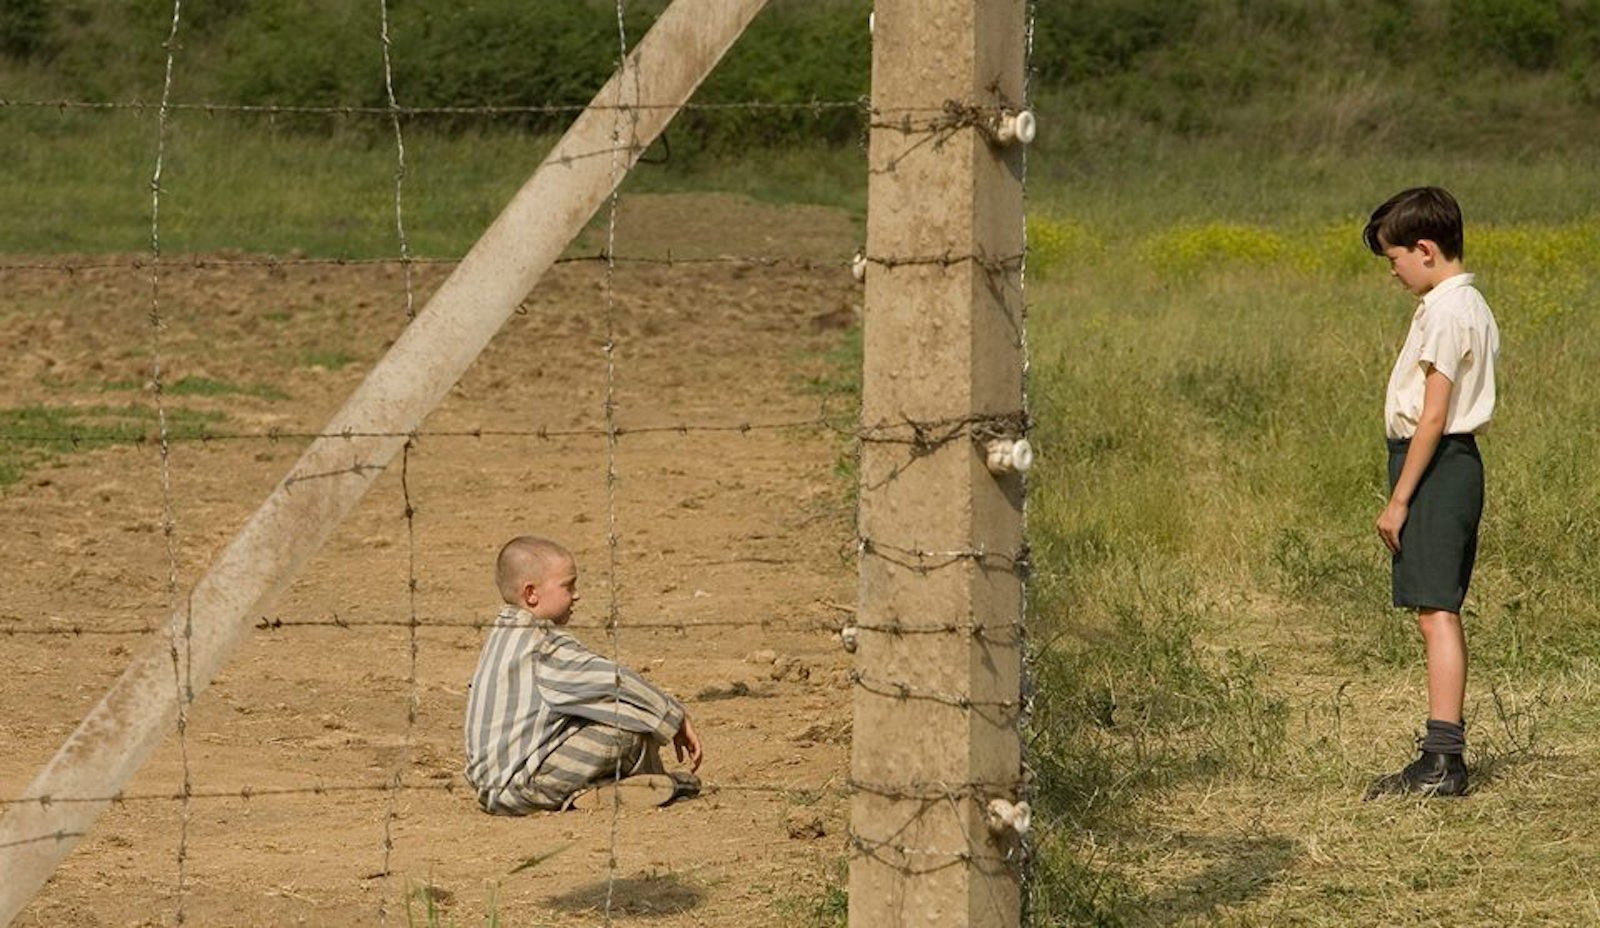 Shot from The Boy in the Striped Pyjamas film.